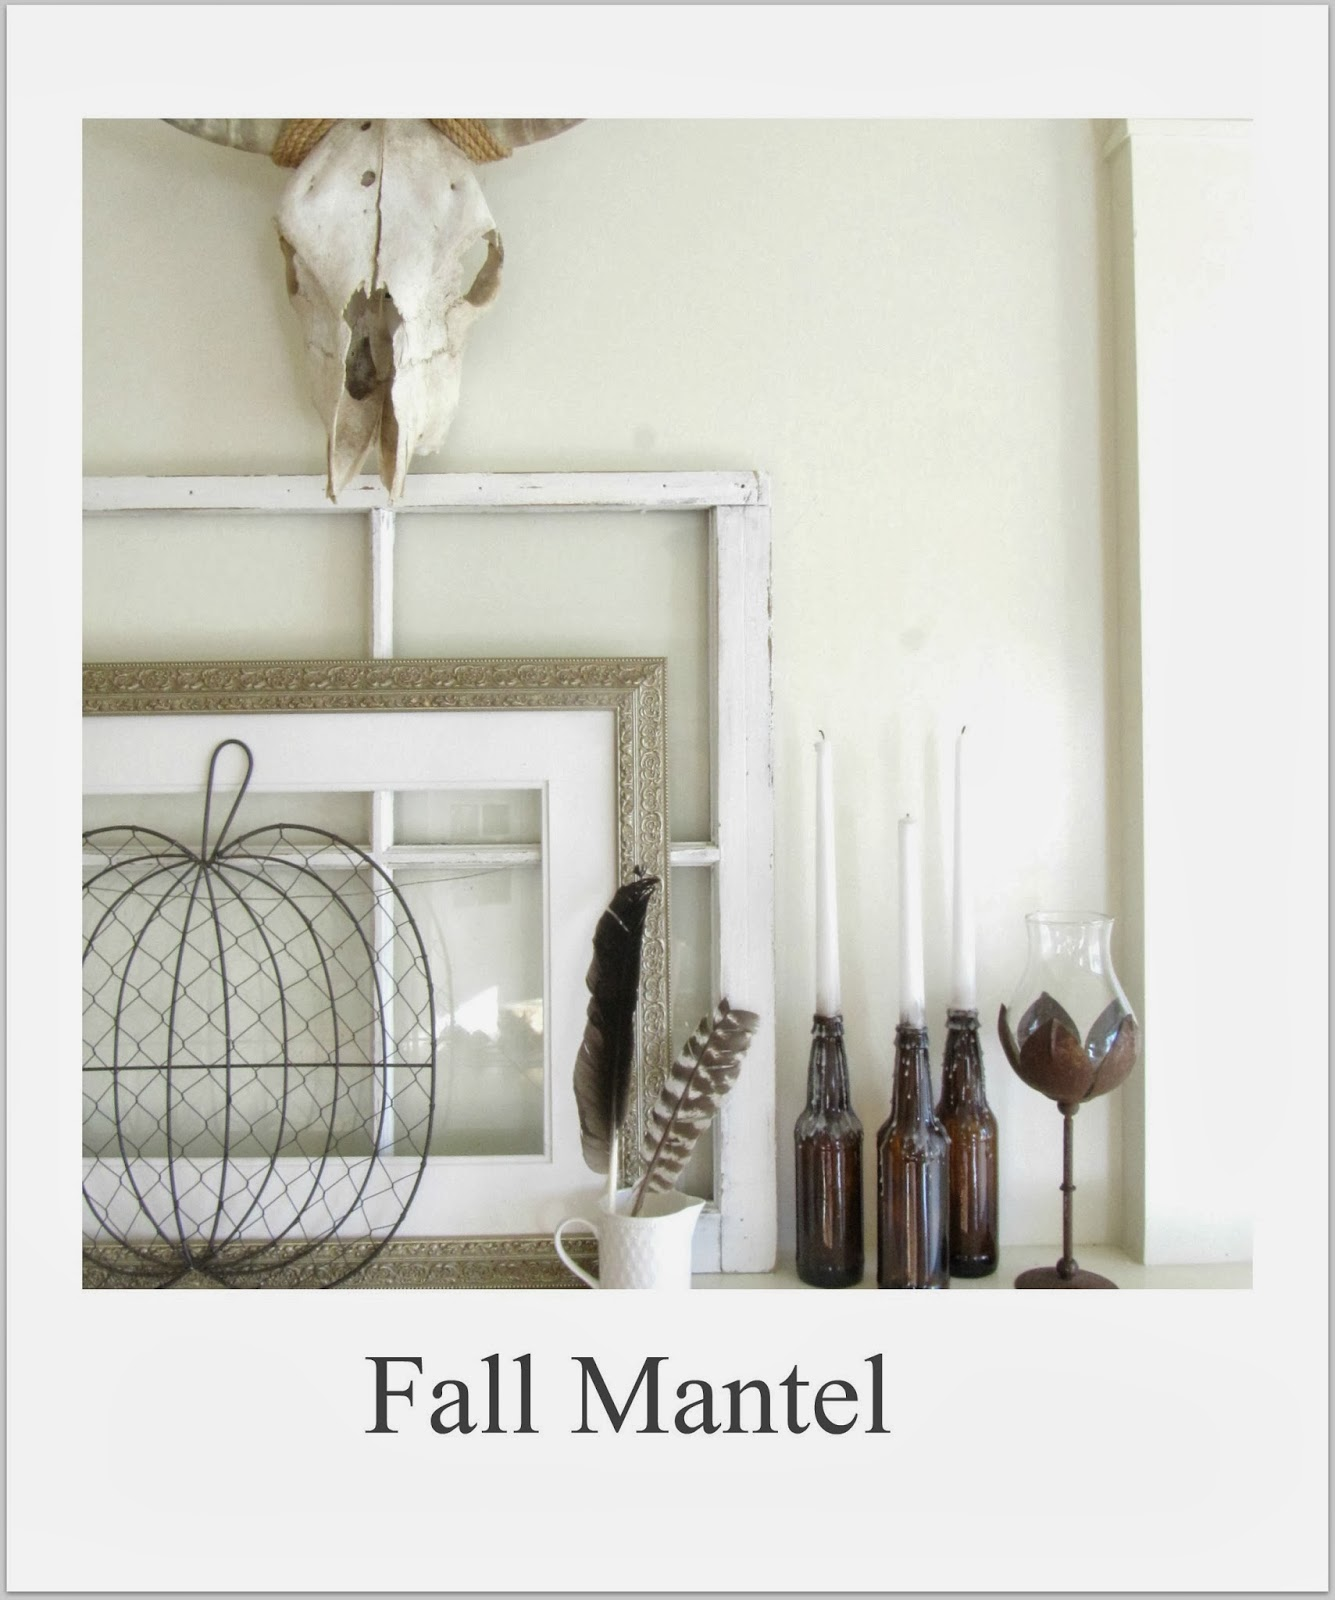 http://thewickerhouse.blogspot.com/2013/11/fall-mantel-updated.html